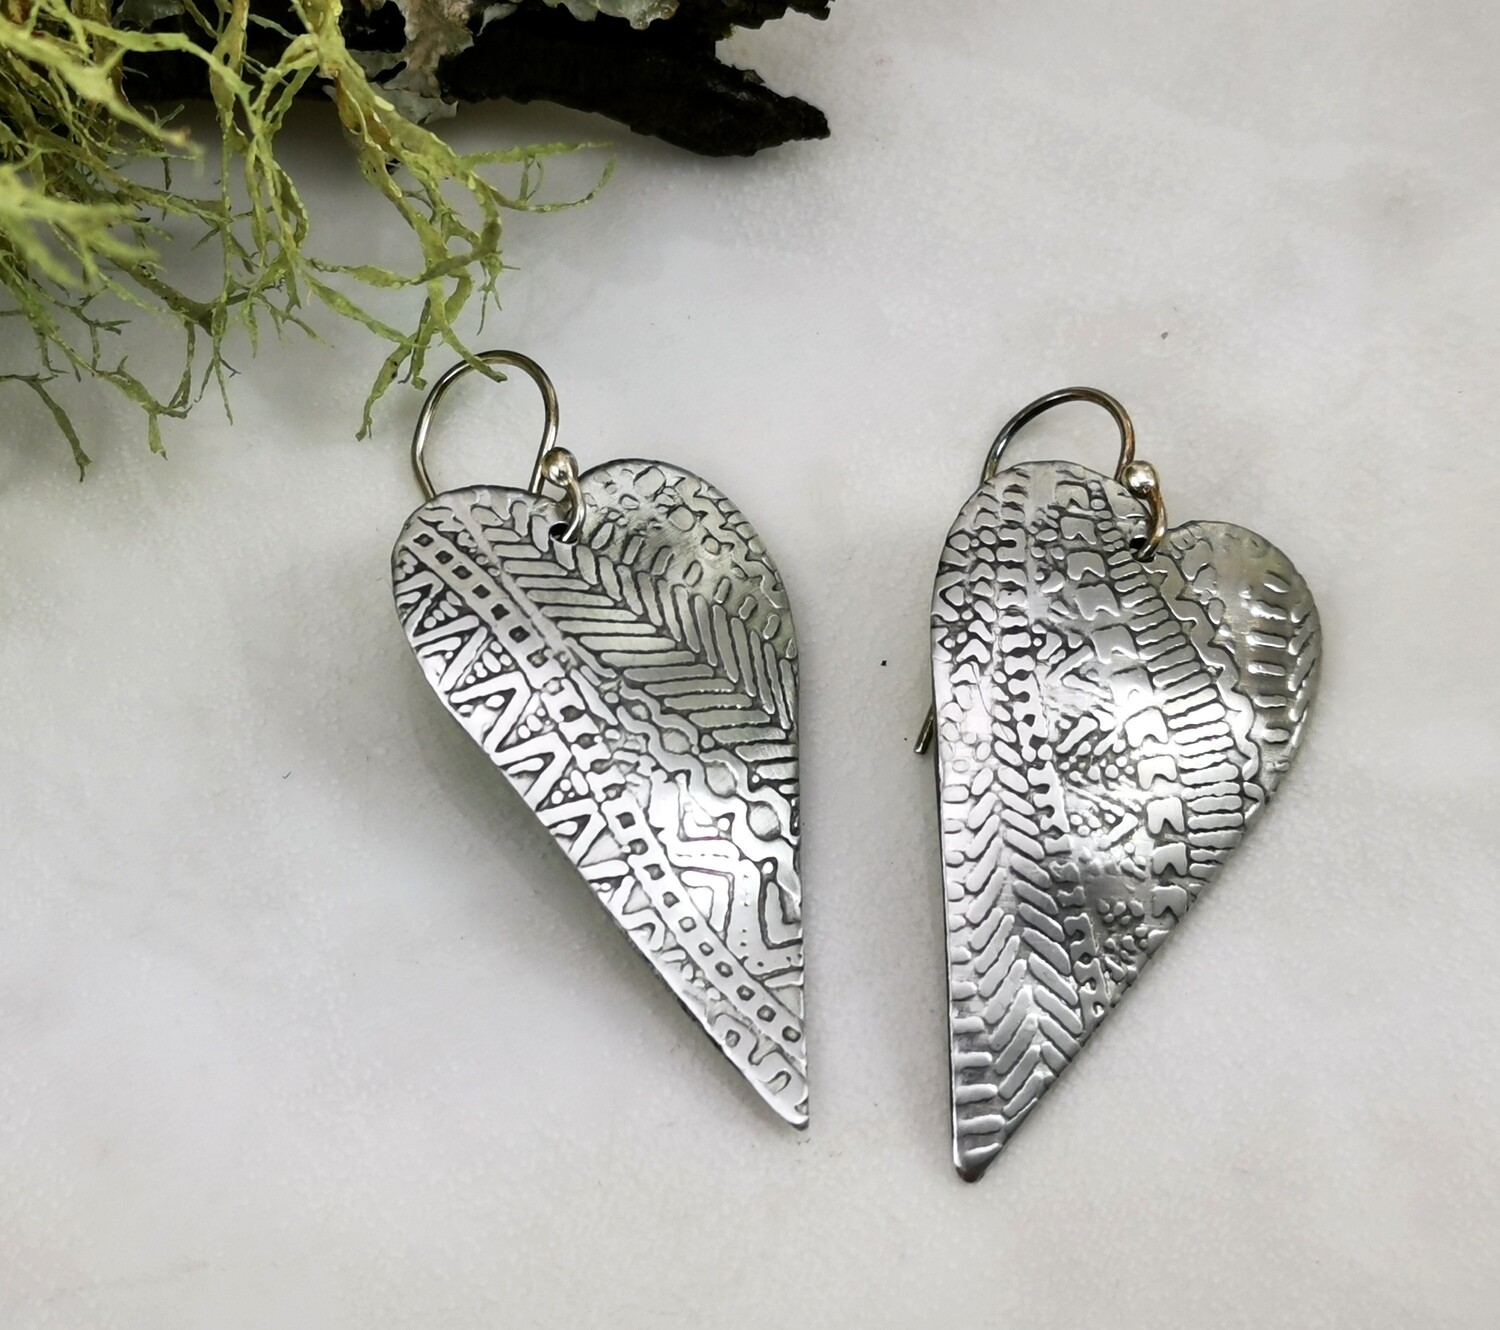 Aluminum Heart Shaped Earrings with a detailed Vertical Zentangle Patterned Texture Lightweight